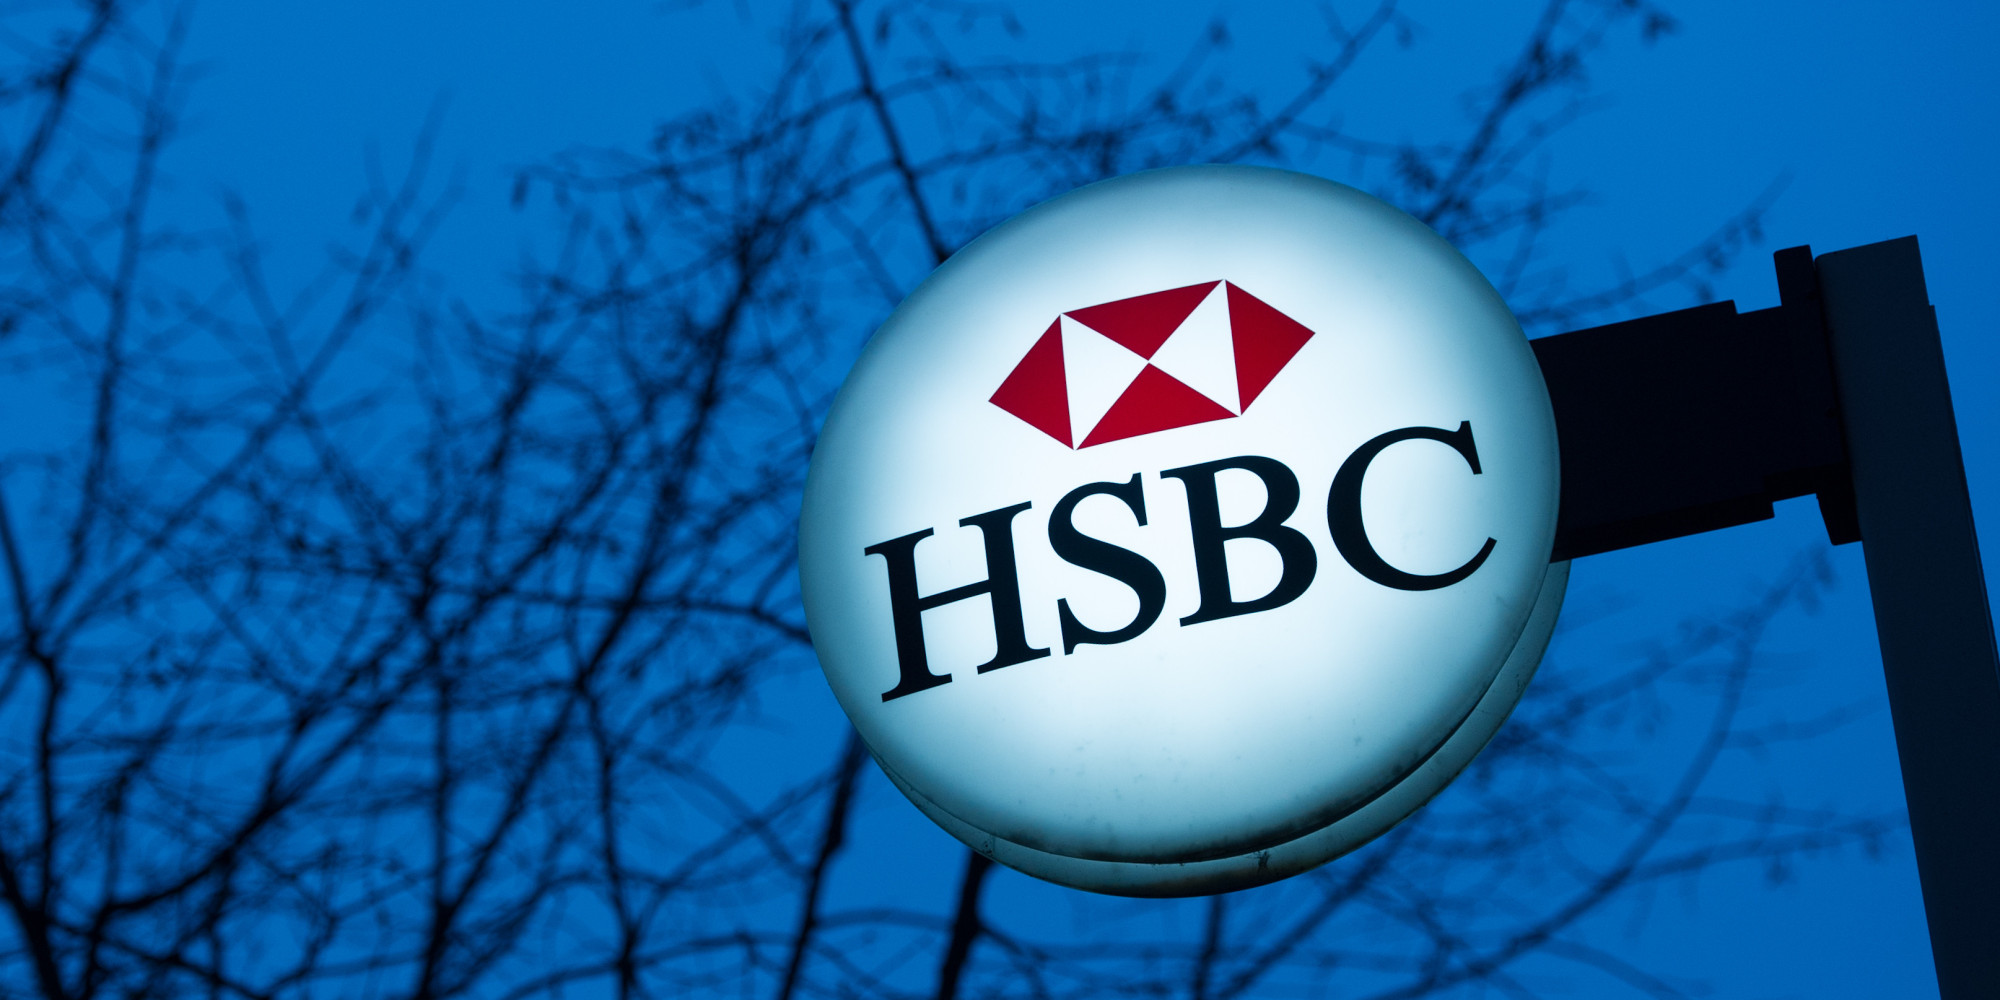 HSBC Profits Fall As Bank Reels From 'Painful' Tax